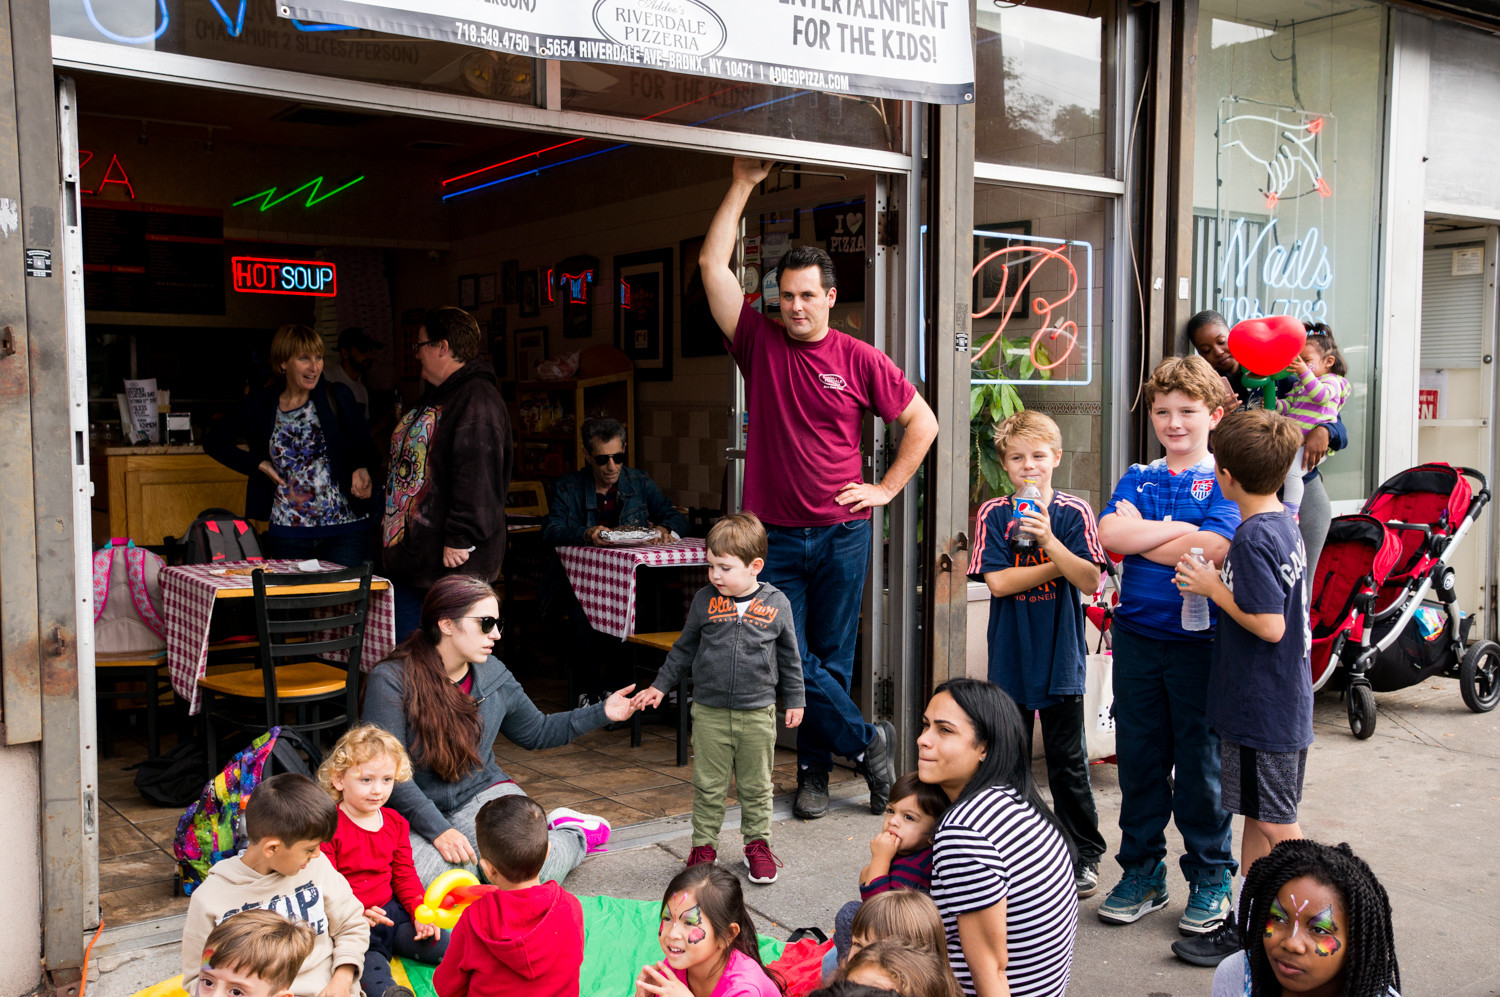 Laurence Addeo, owner of Addeo's Riverdale Pizza, watches as the clowns entertain the kids for his customer appreciation day, which also had pizza slices on sale for $1 each.